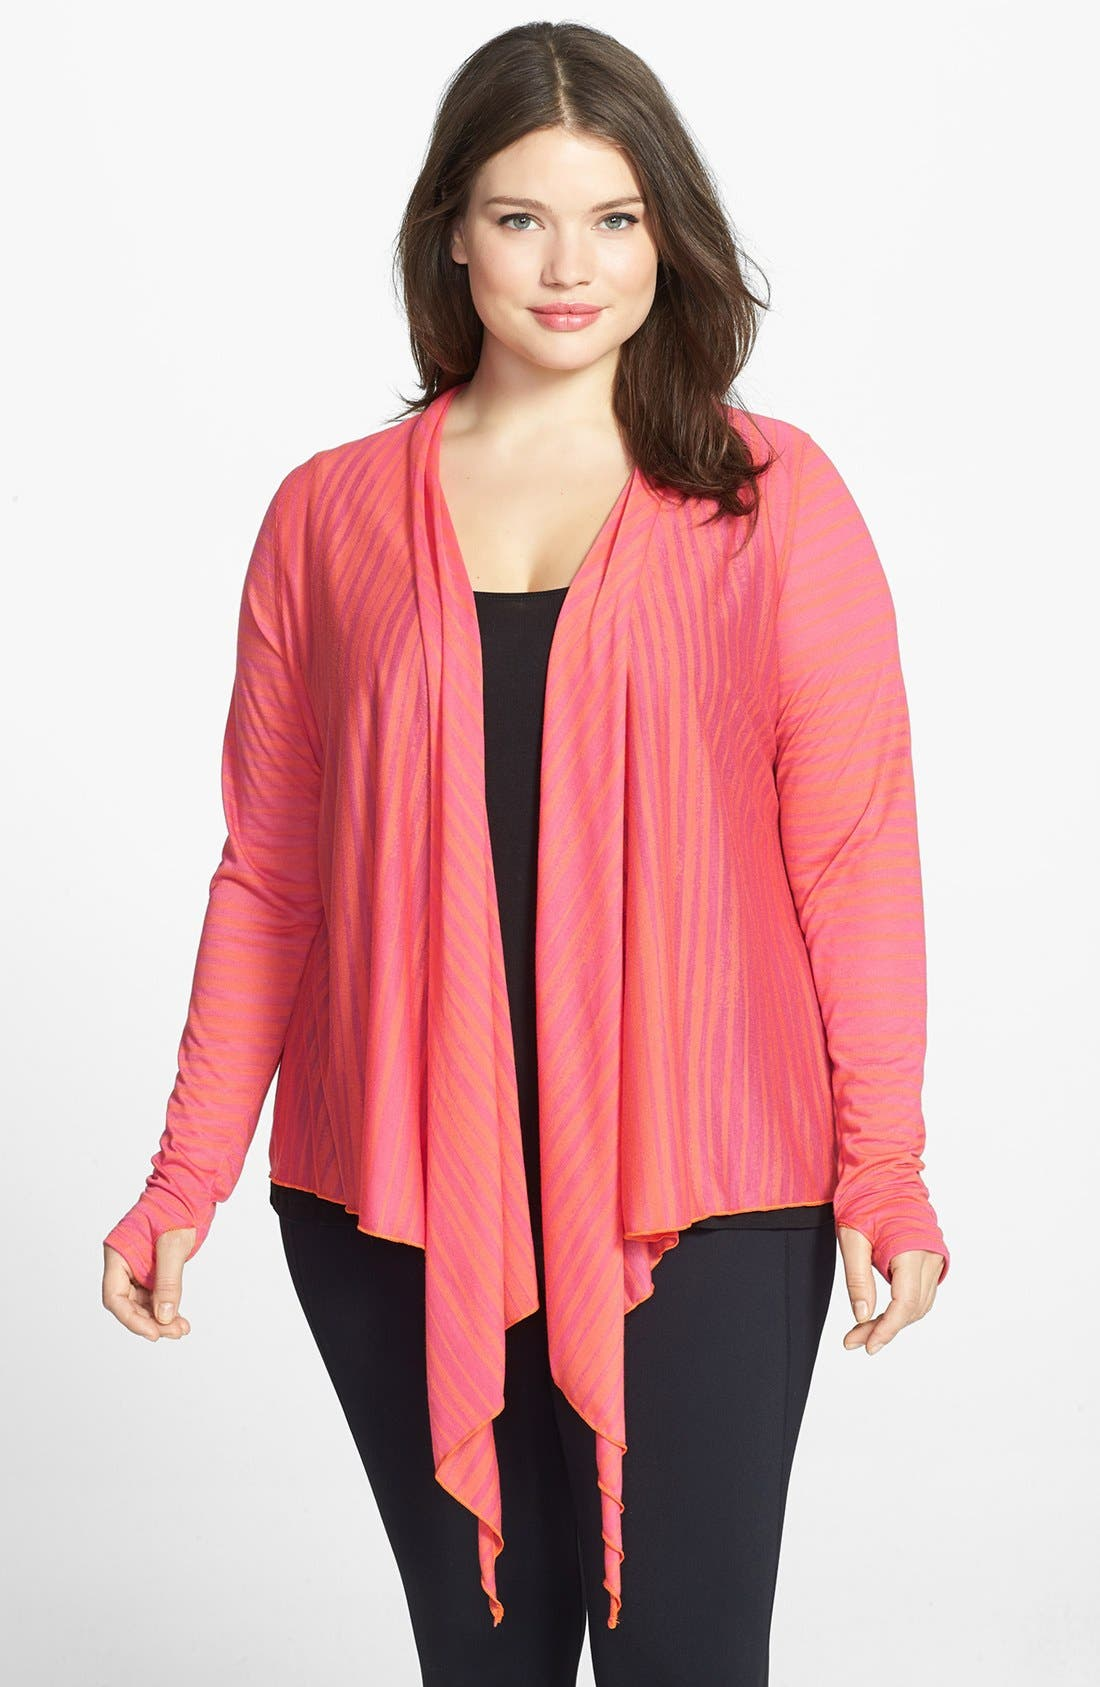 Main Image - Moving Comfort 'Flaunt It' Wrap Cardigan (Plus Size)